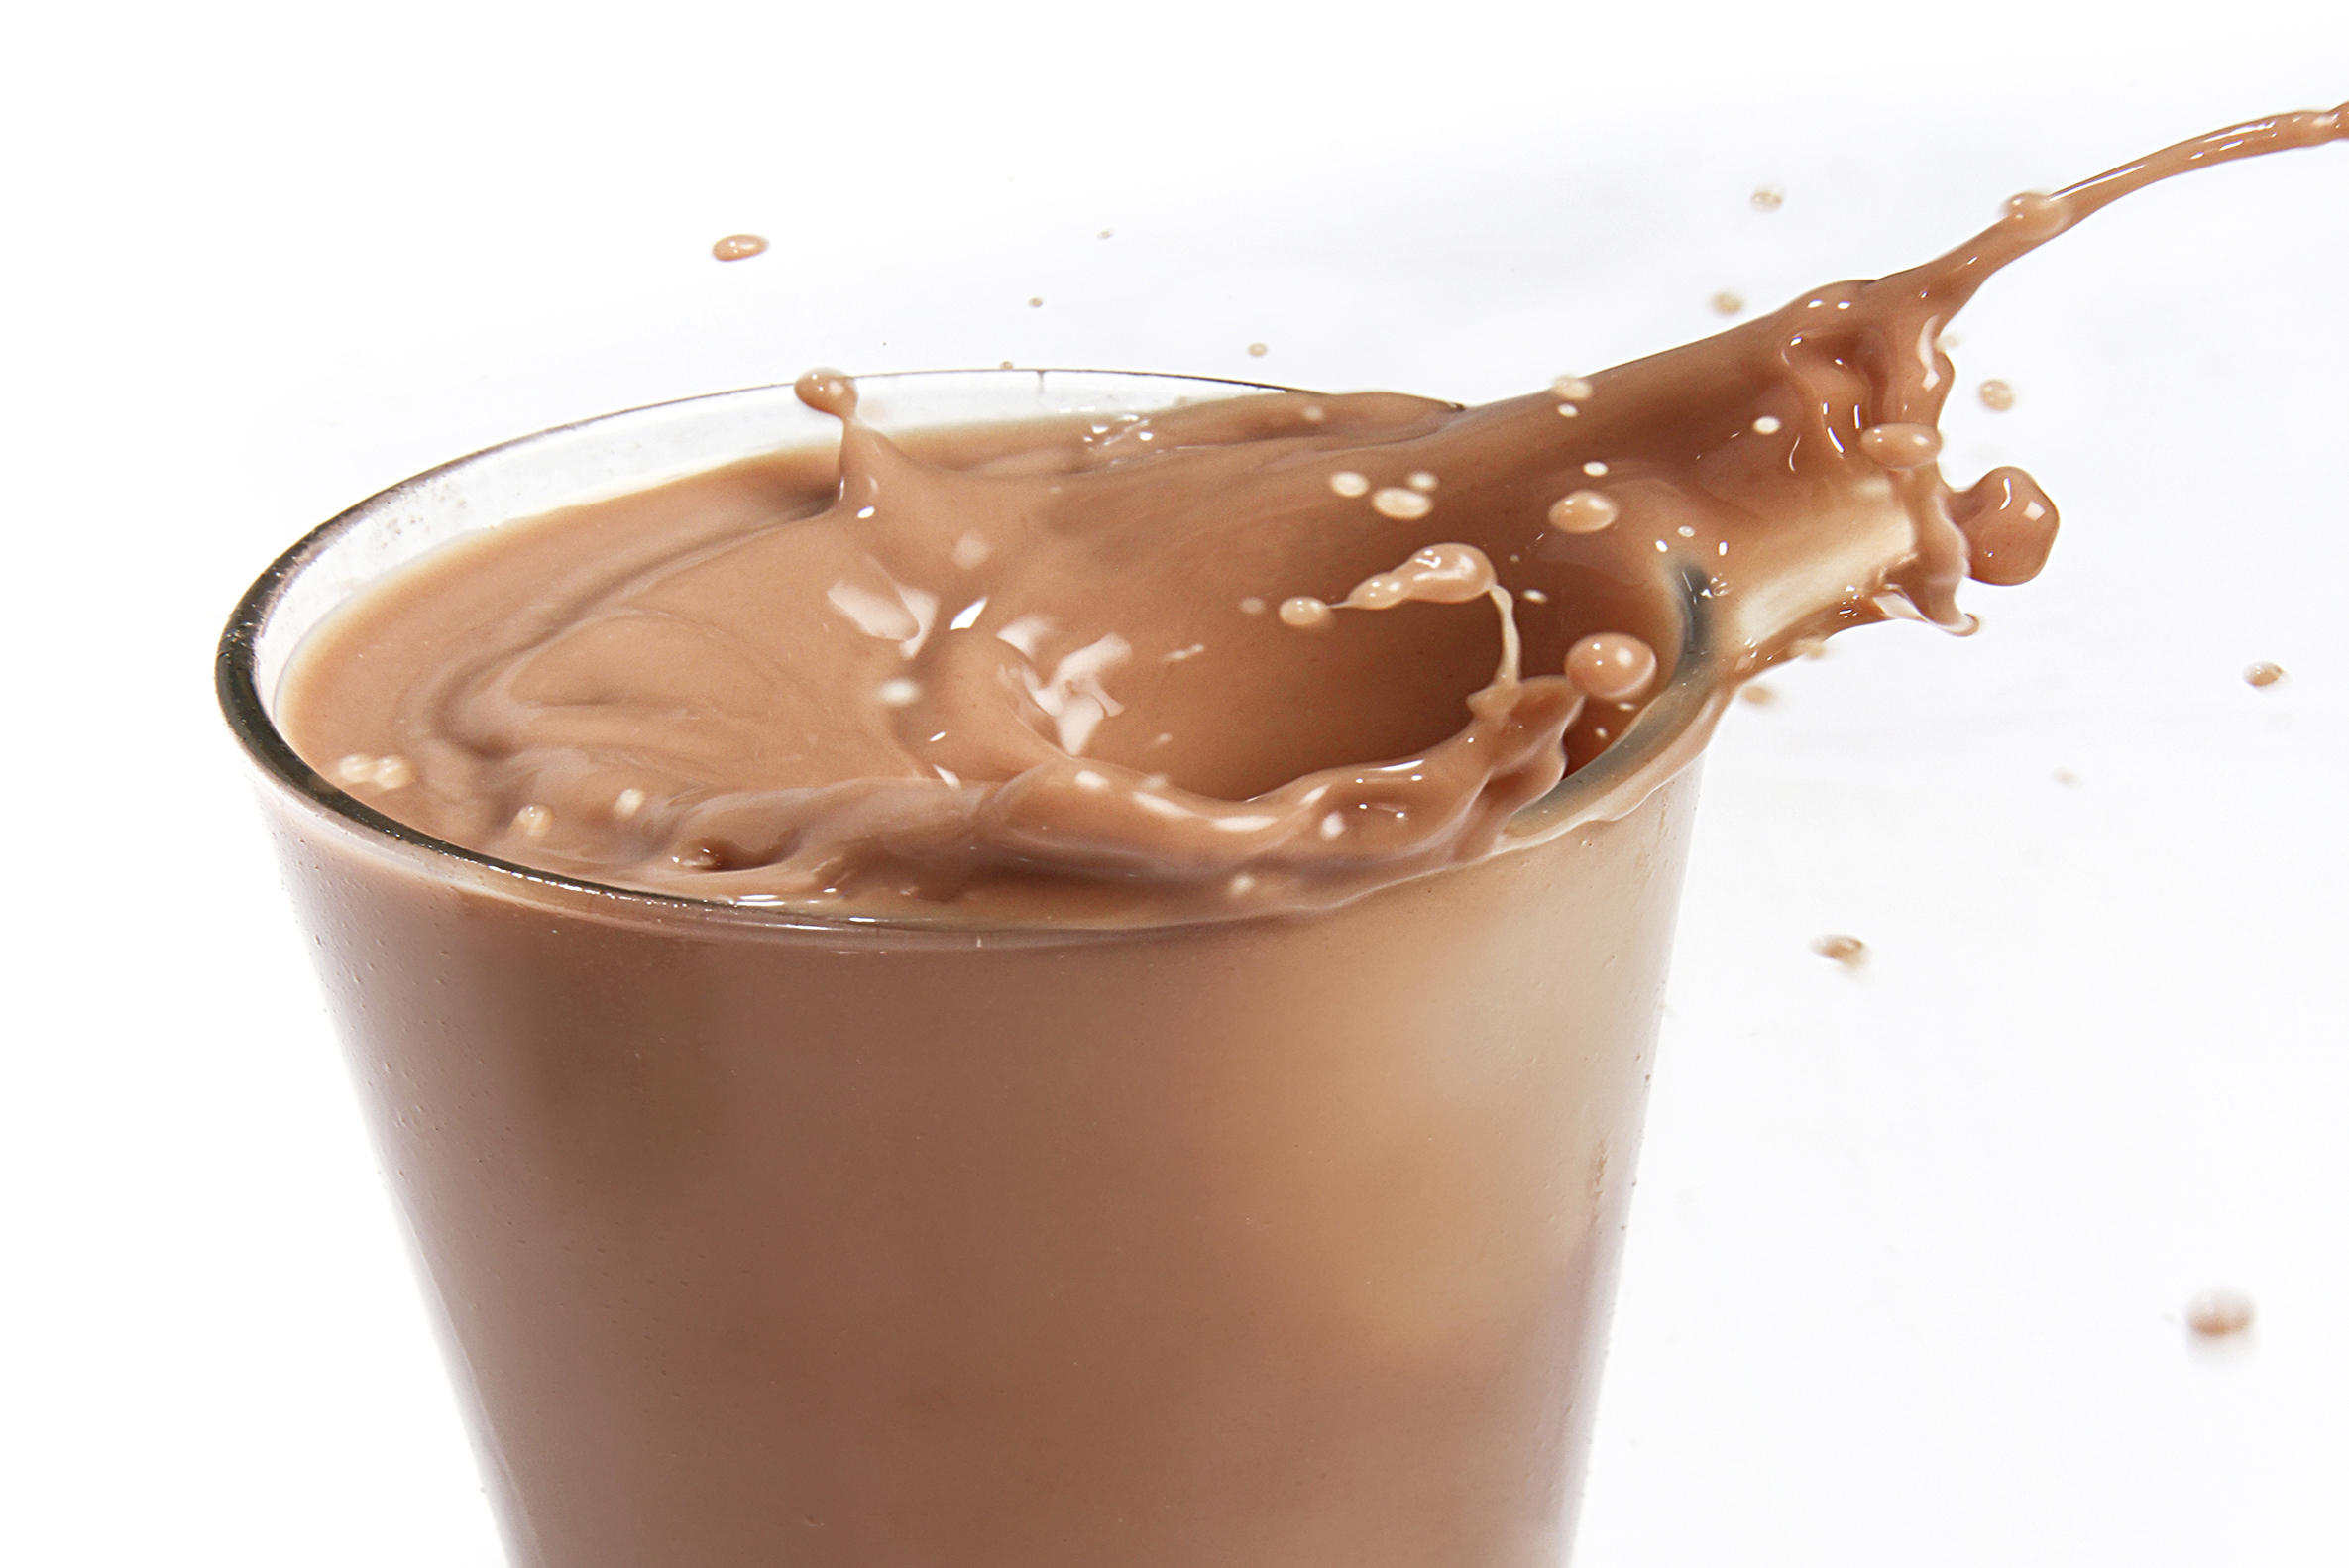 Chocolate Milk images Chocolate Milk HD wallpaper and background ...